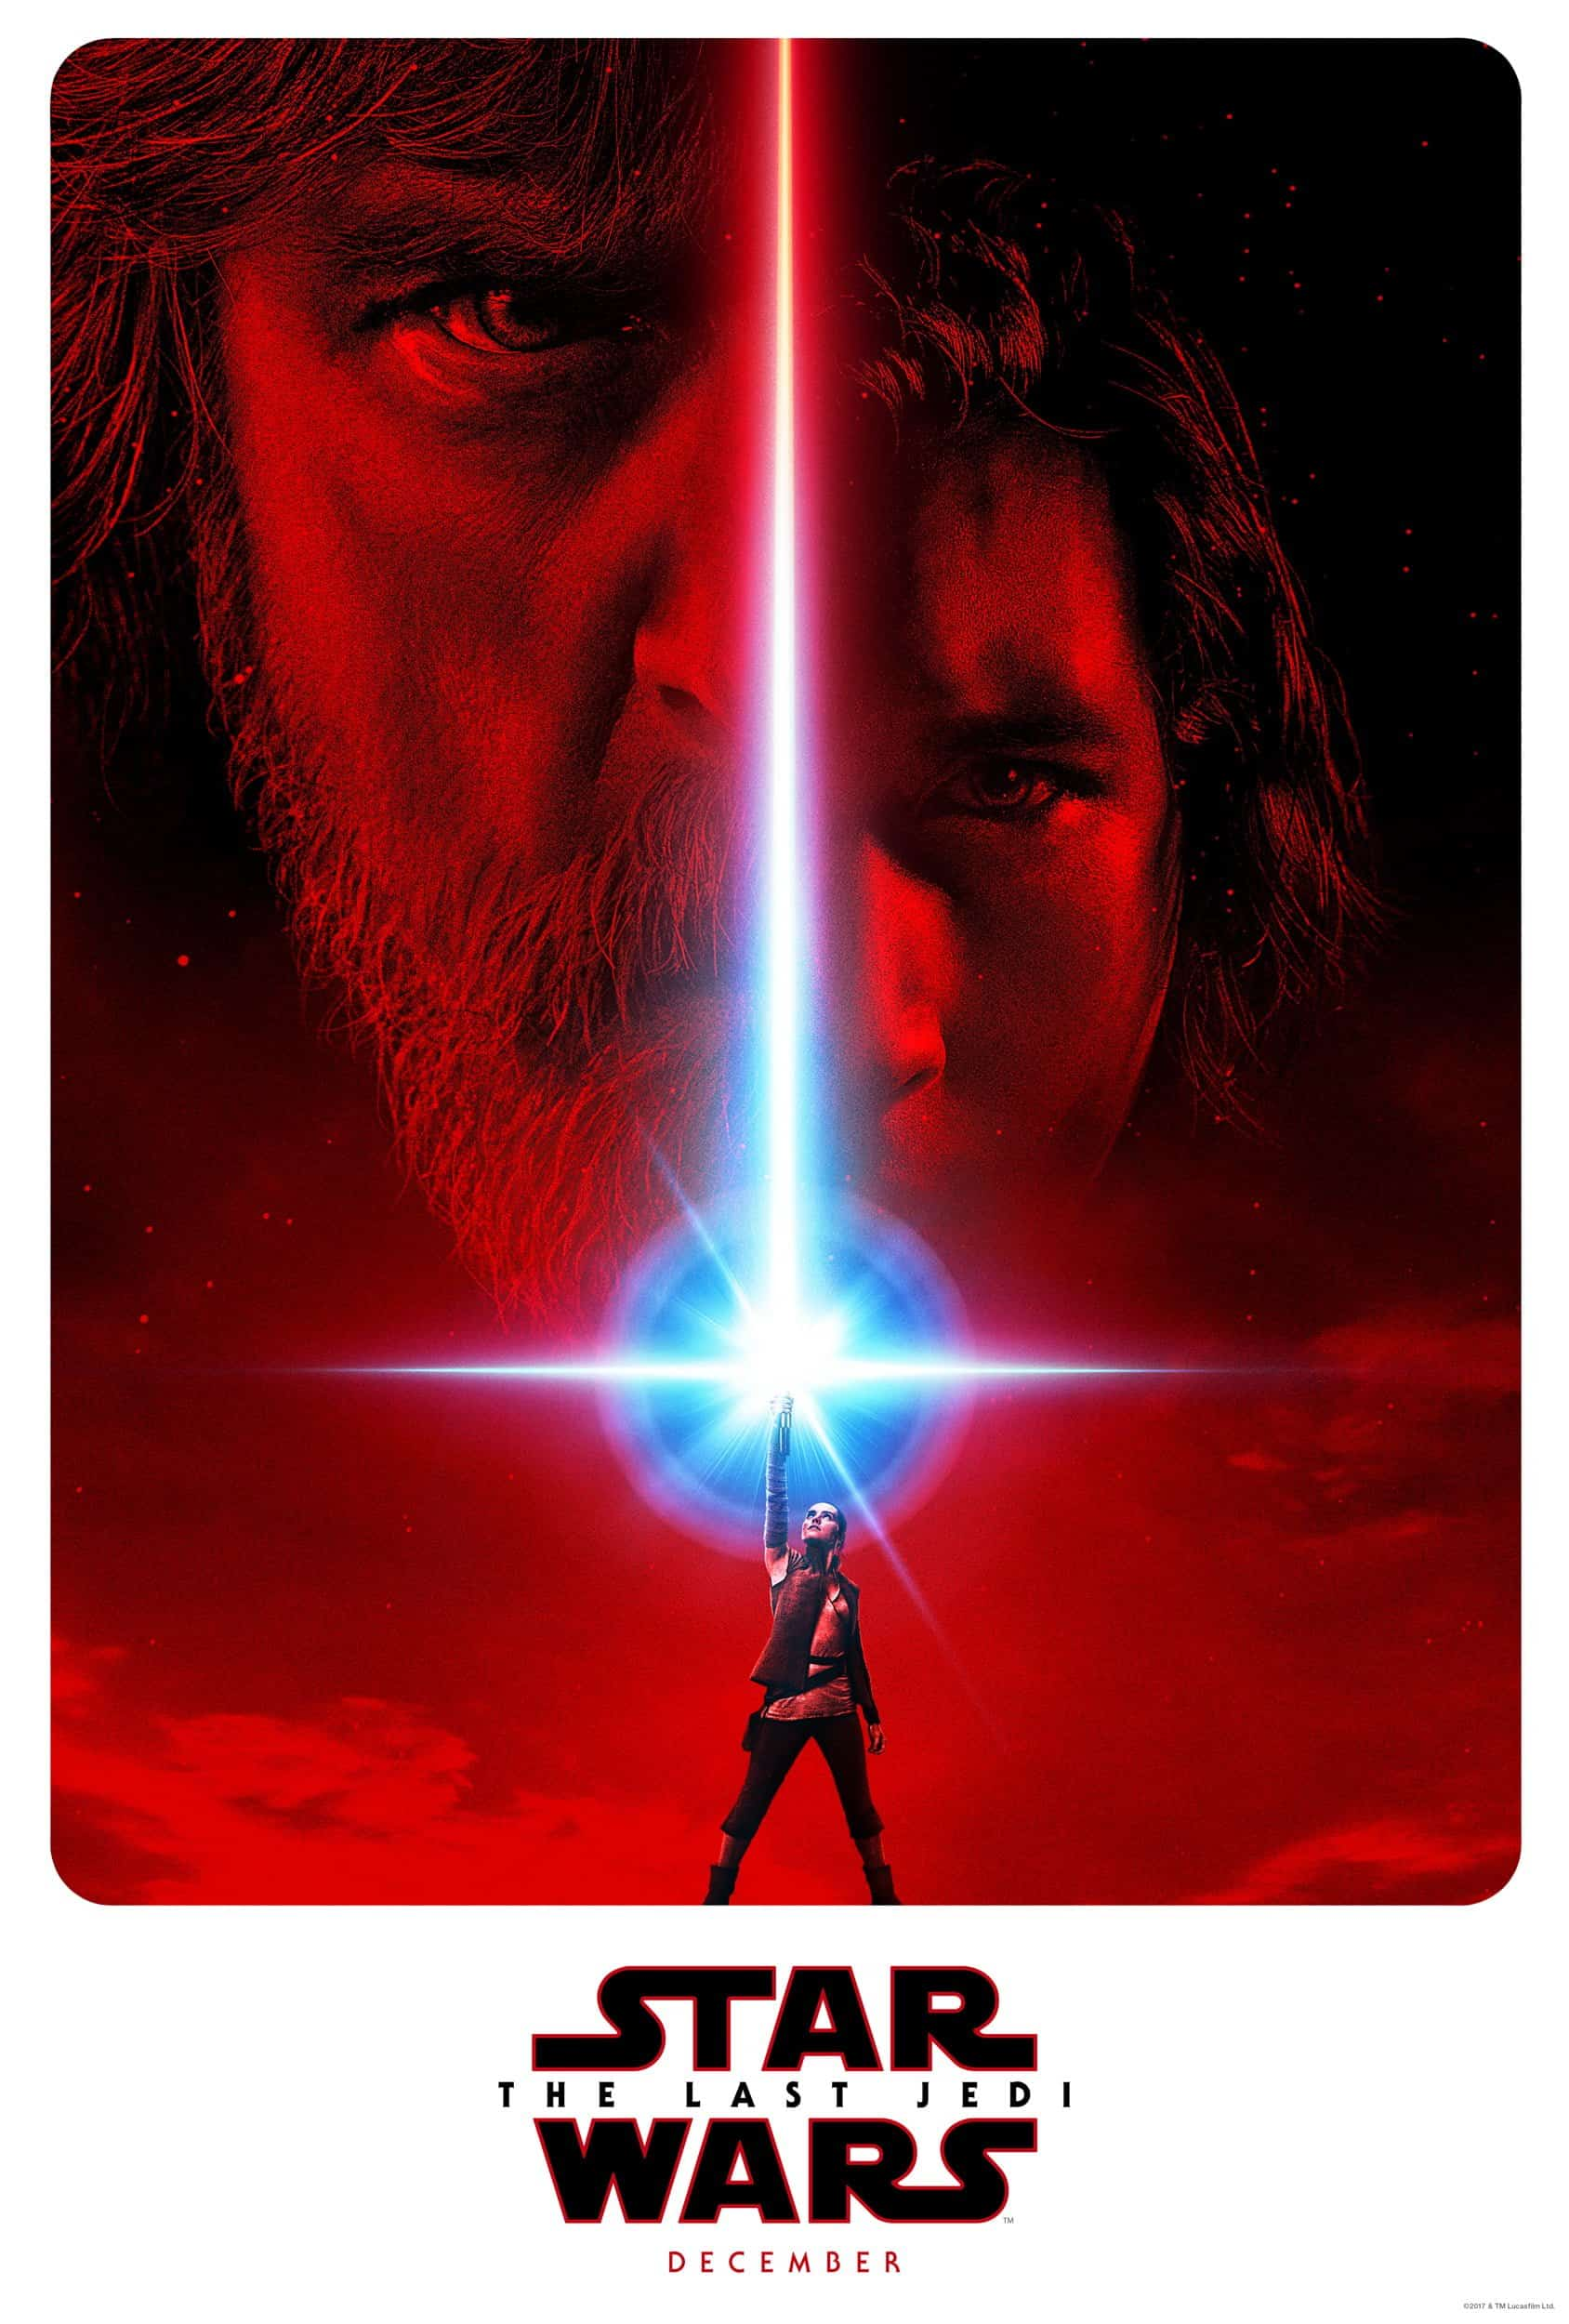 Star Wars The Last Jedi Teaser Poster Faithandfamilyfun.com